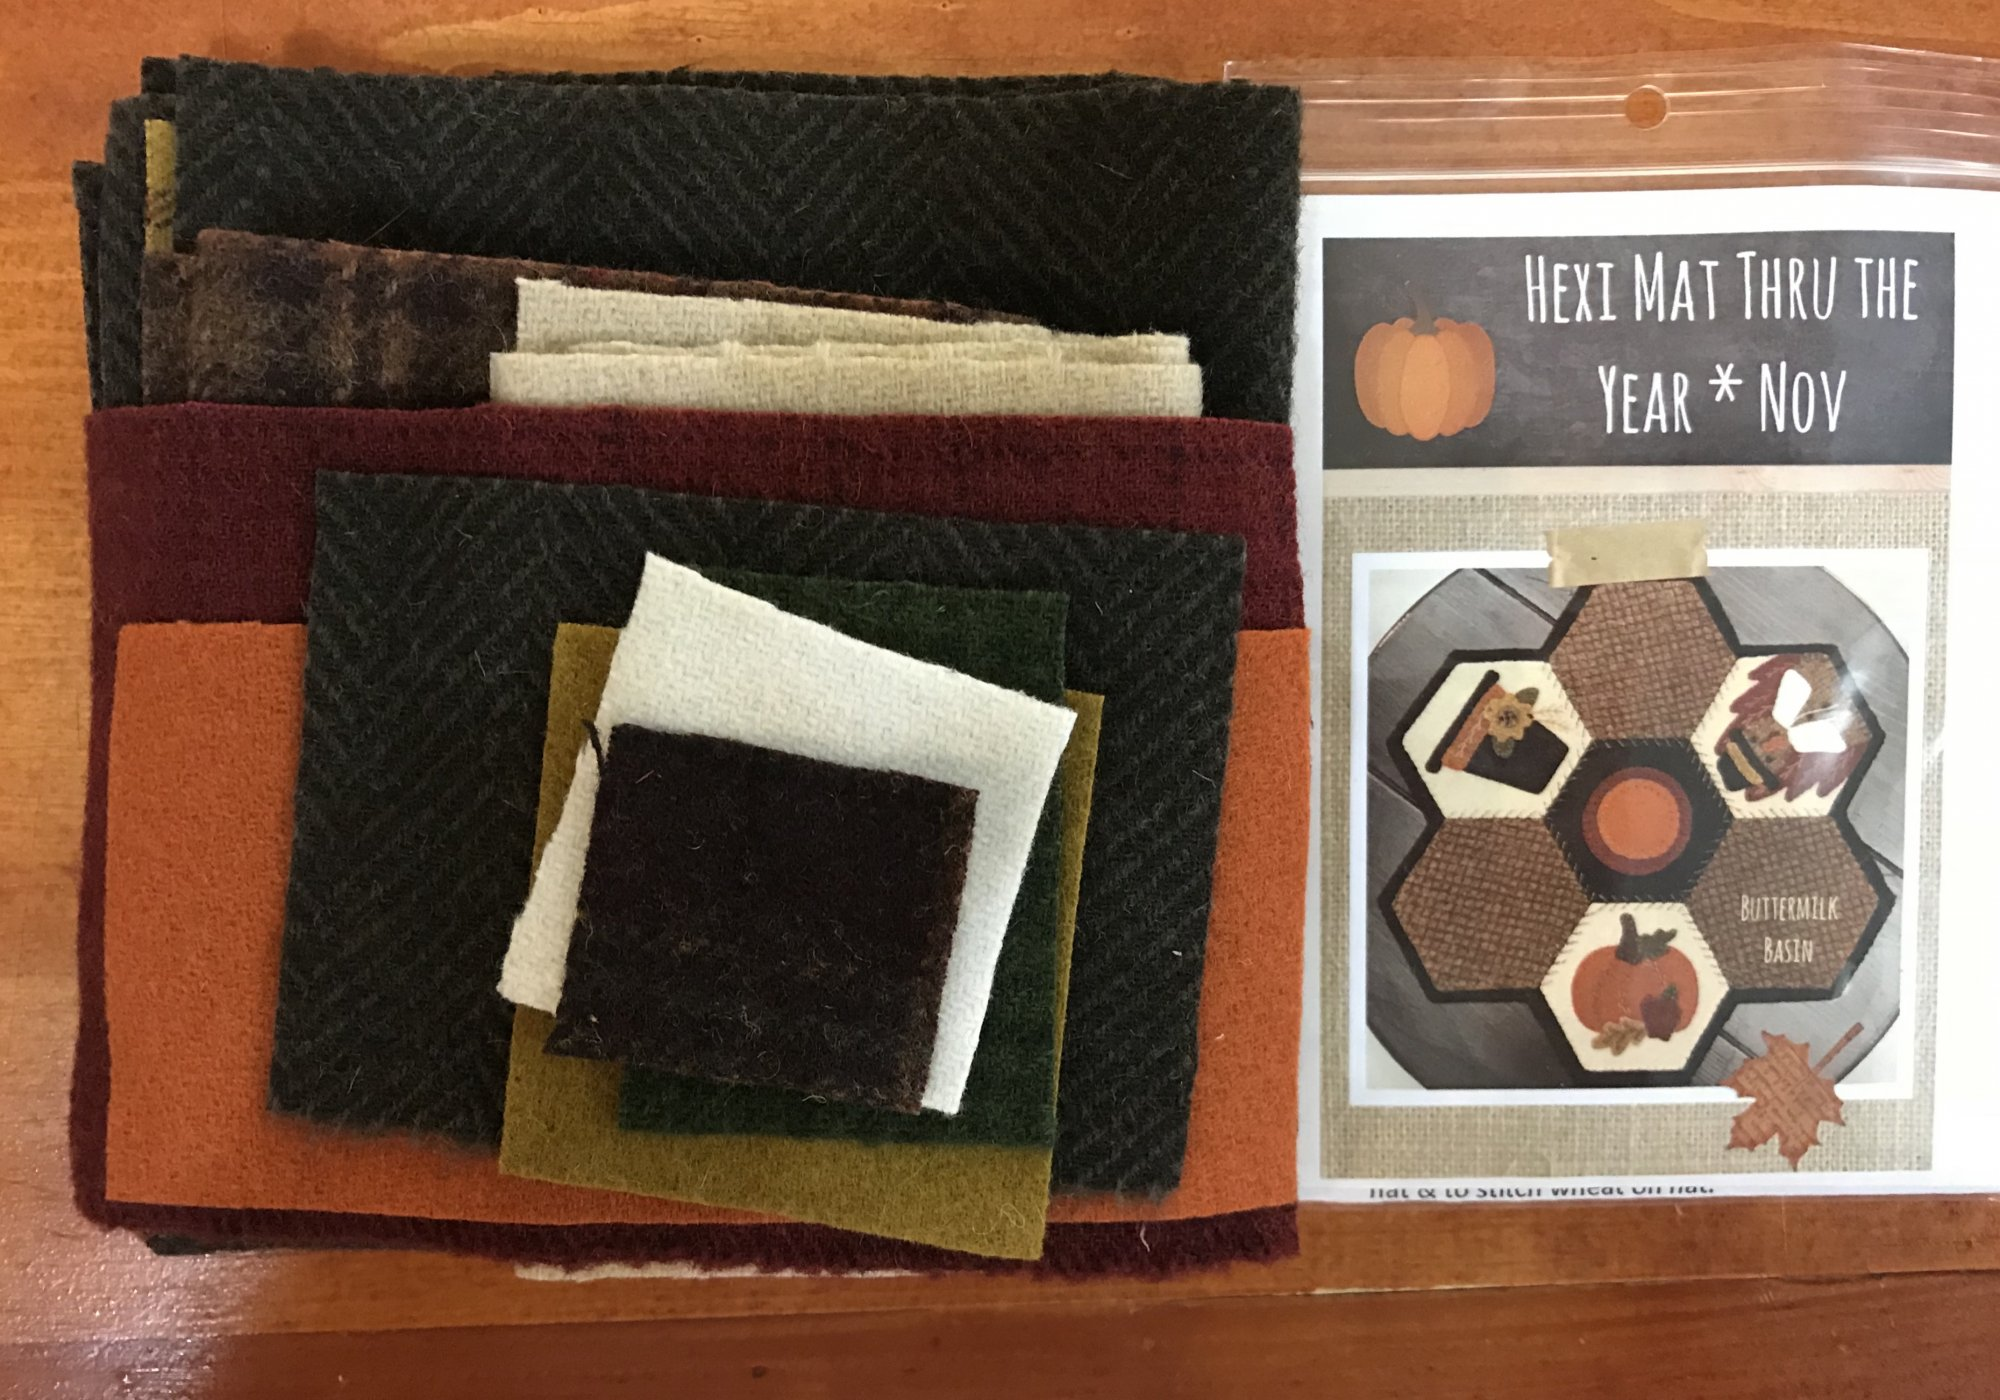 Hexi Mats thru the Year Nov Kit